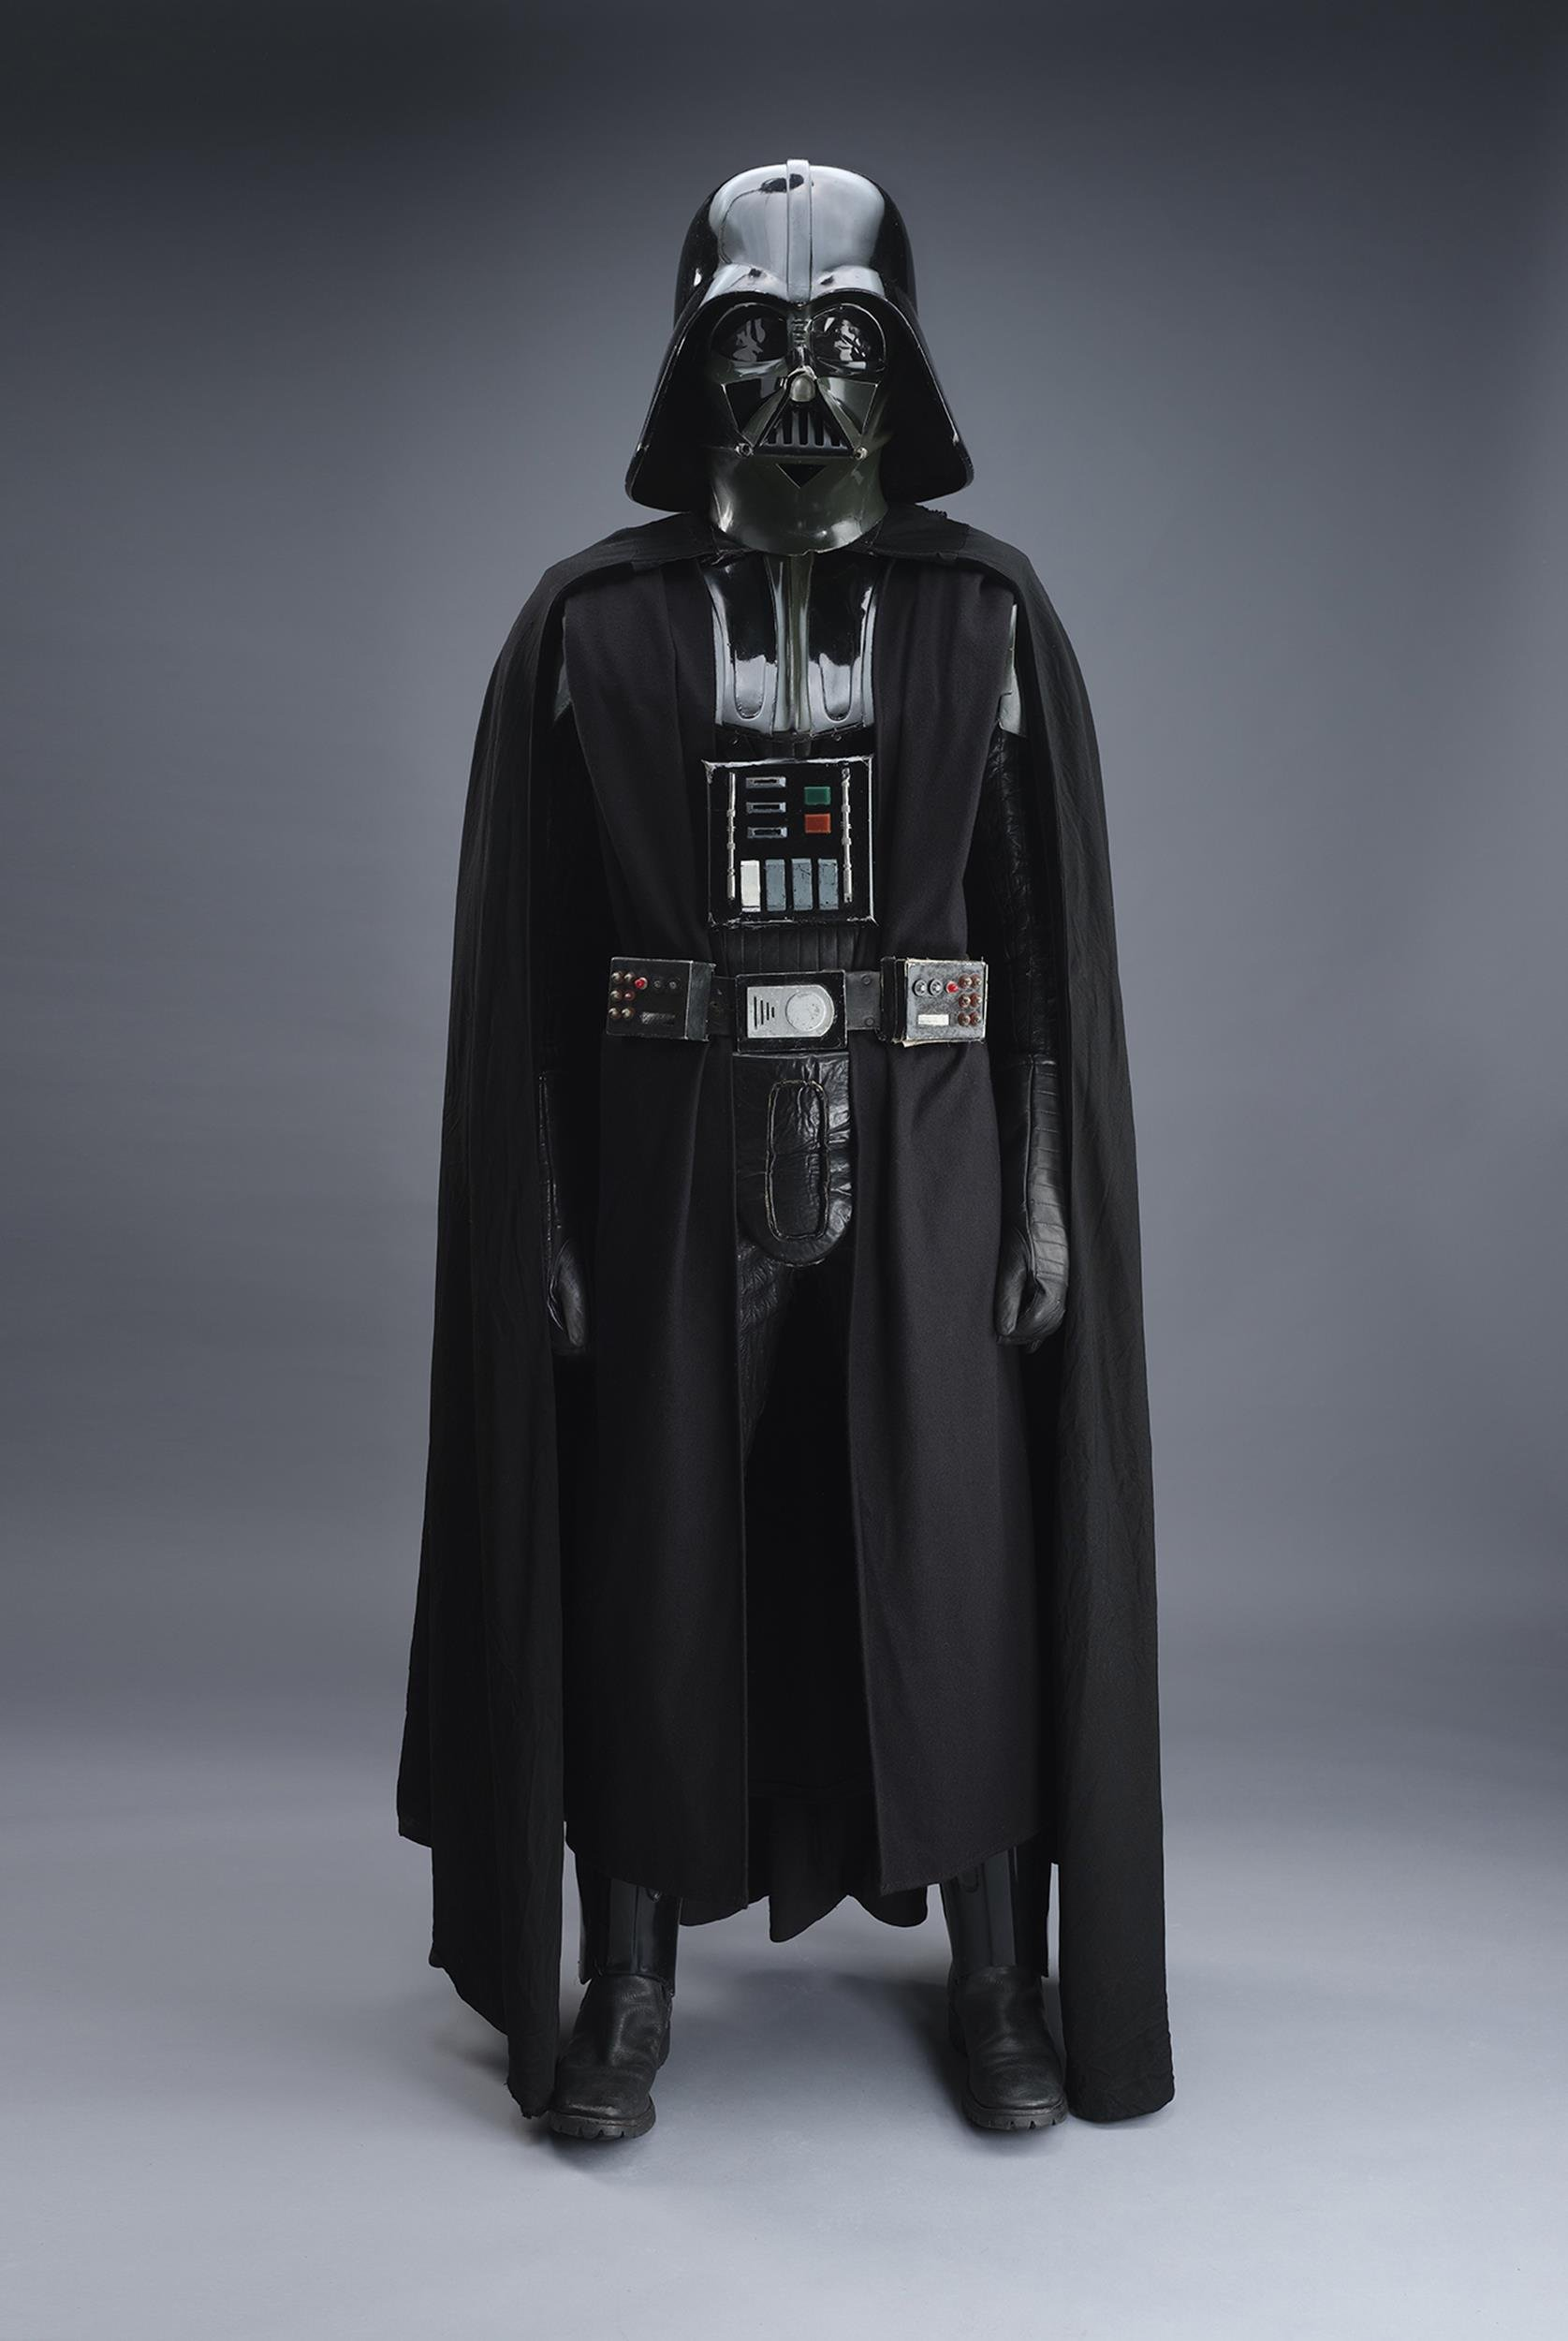 Darth Vader Promotional Touring Costume